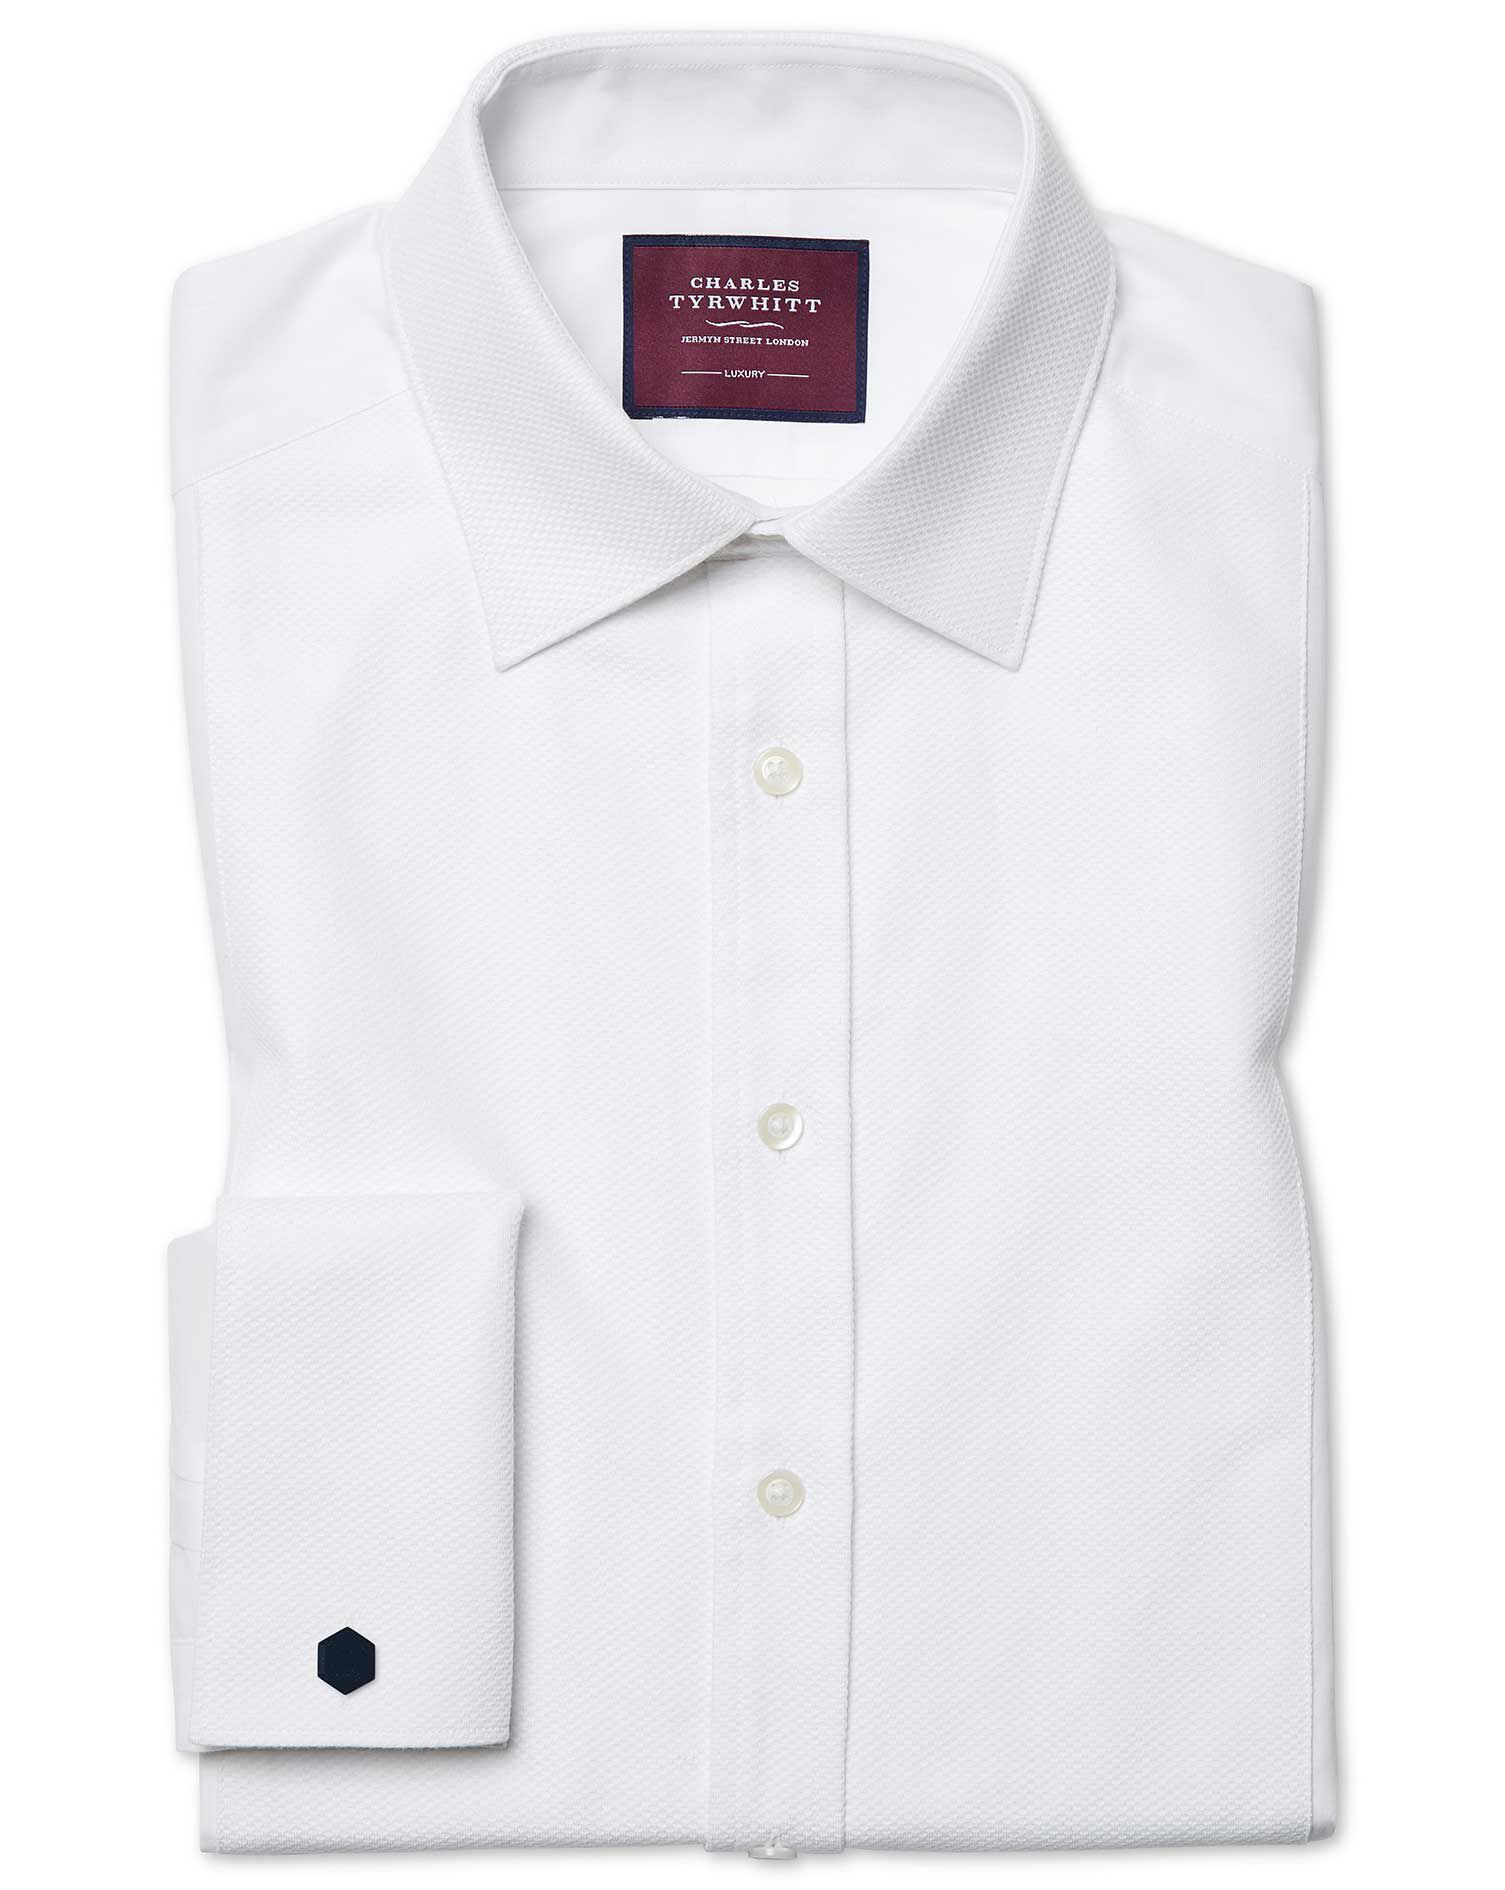 Classic Fit Luxury Marcella White Evening Egyptian Cotton Formal Shirt Double Cuff Size 16/33 by Cha